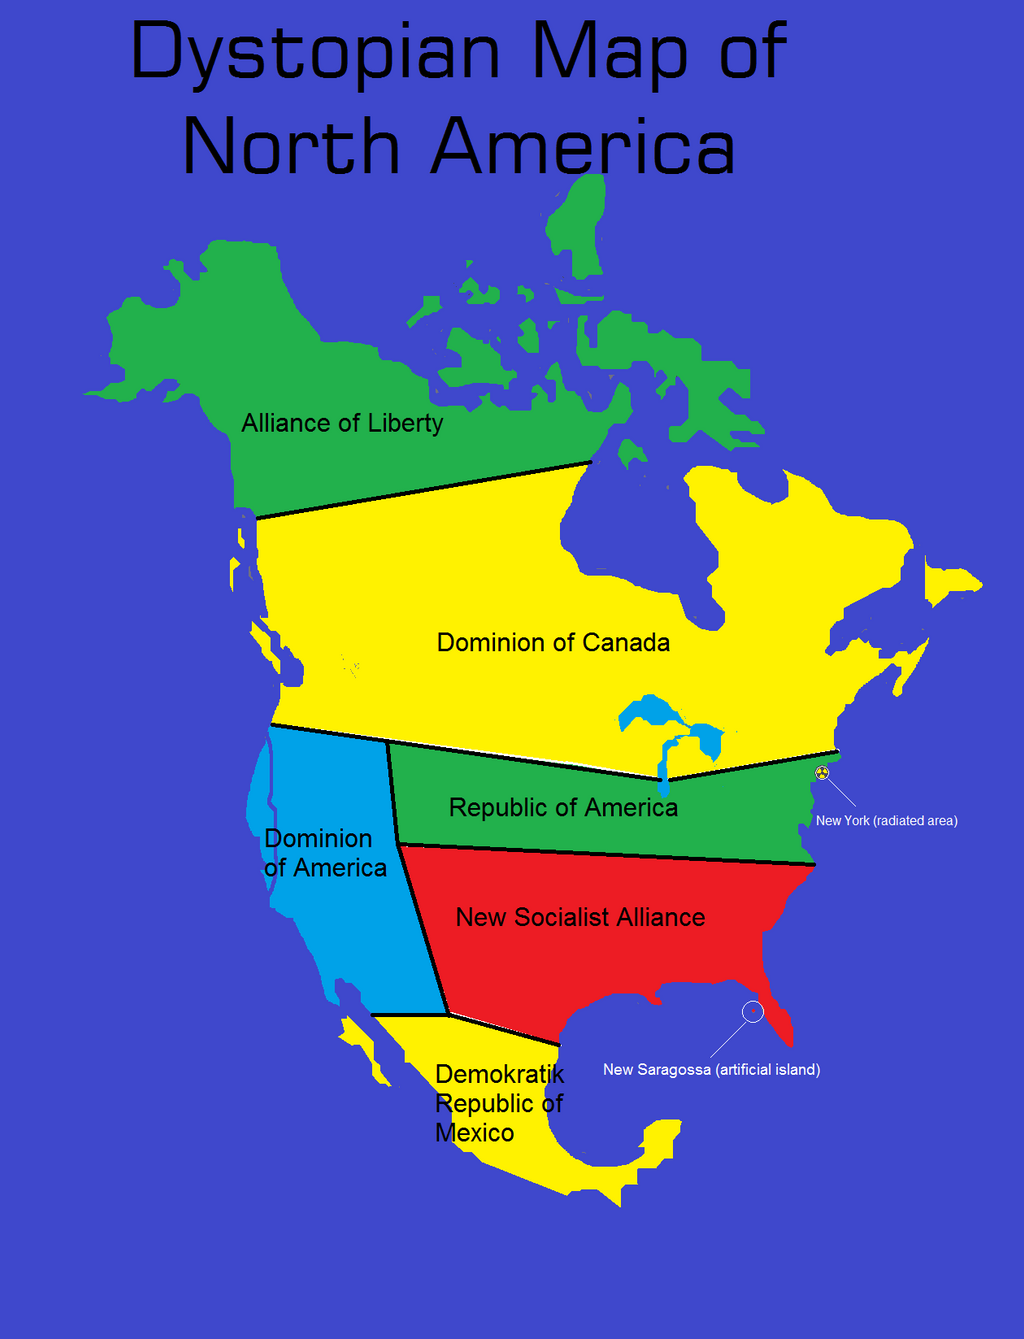 Dystopian Map North America By Tom On DeviantArt - Future map of north america